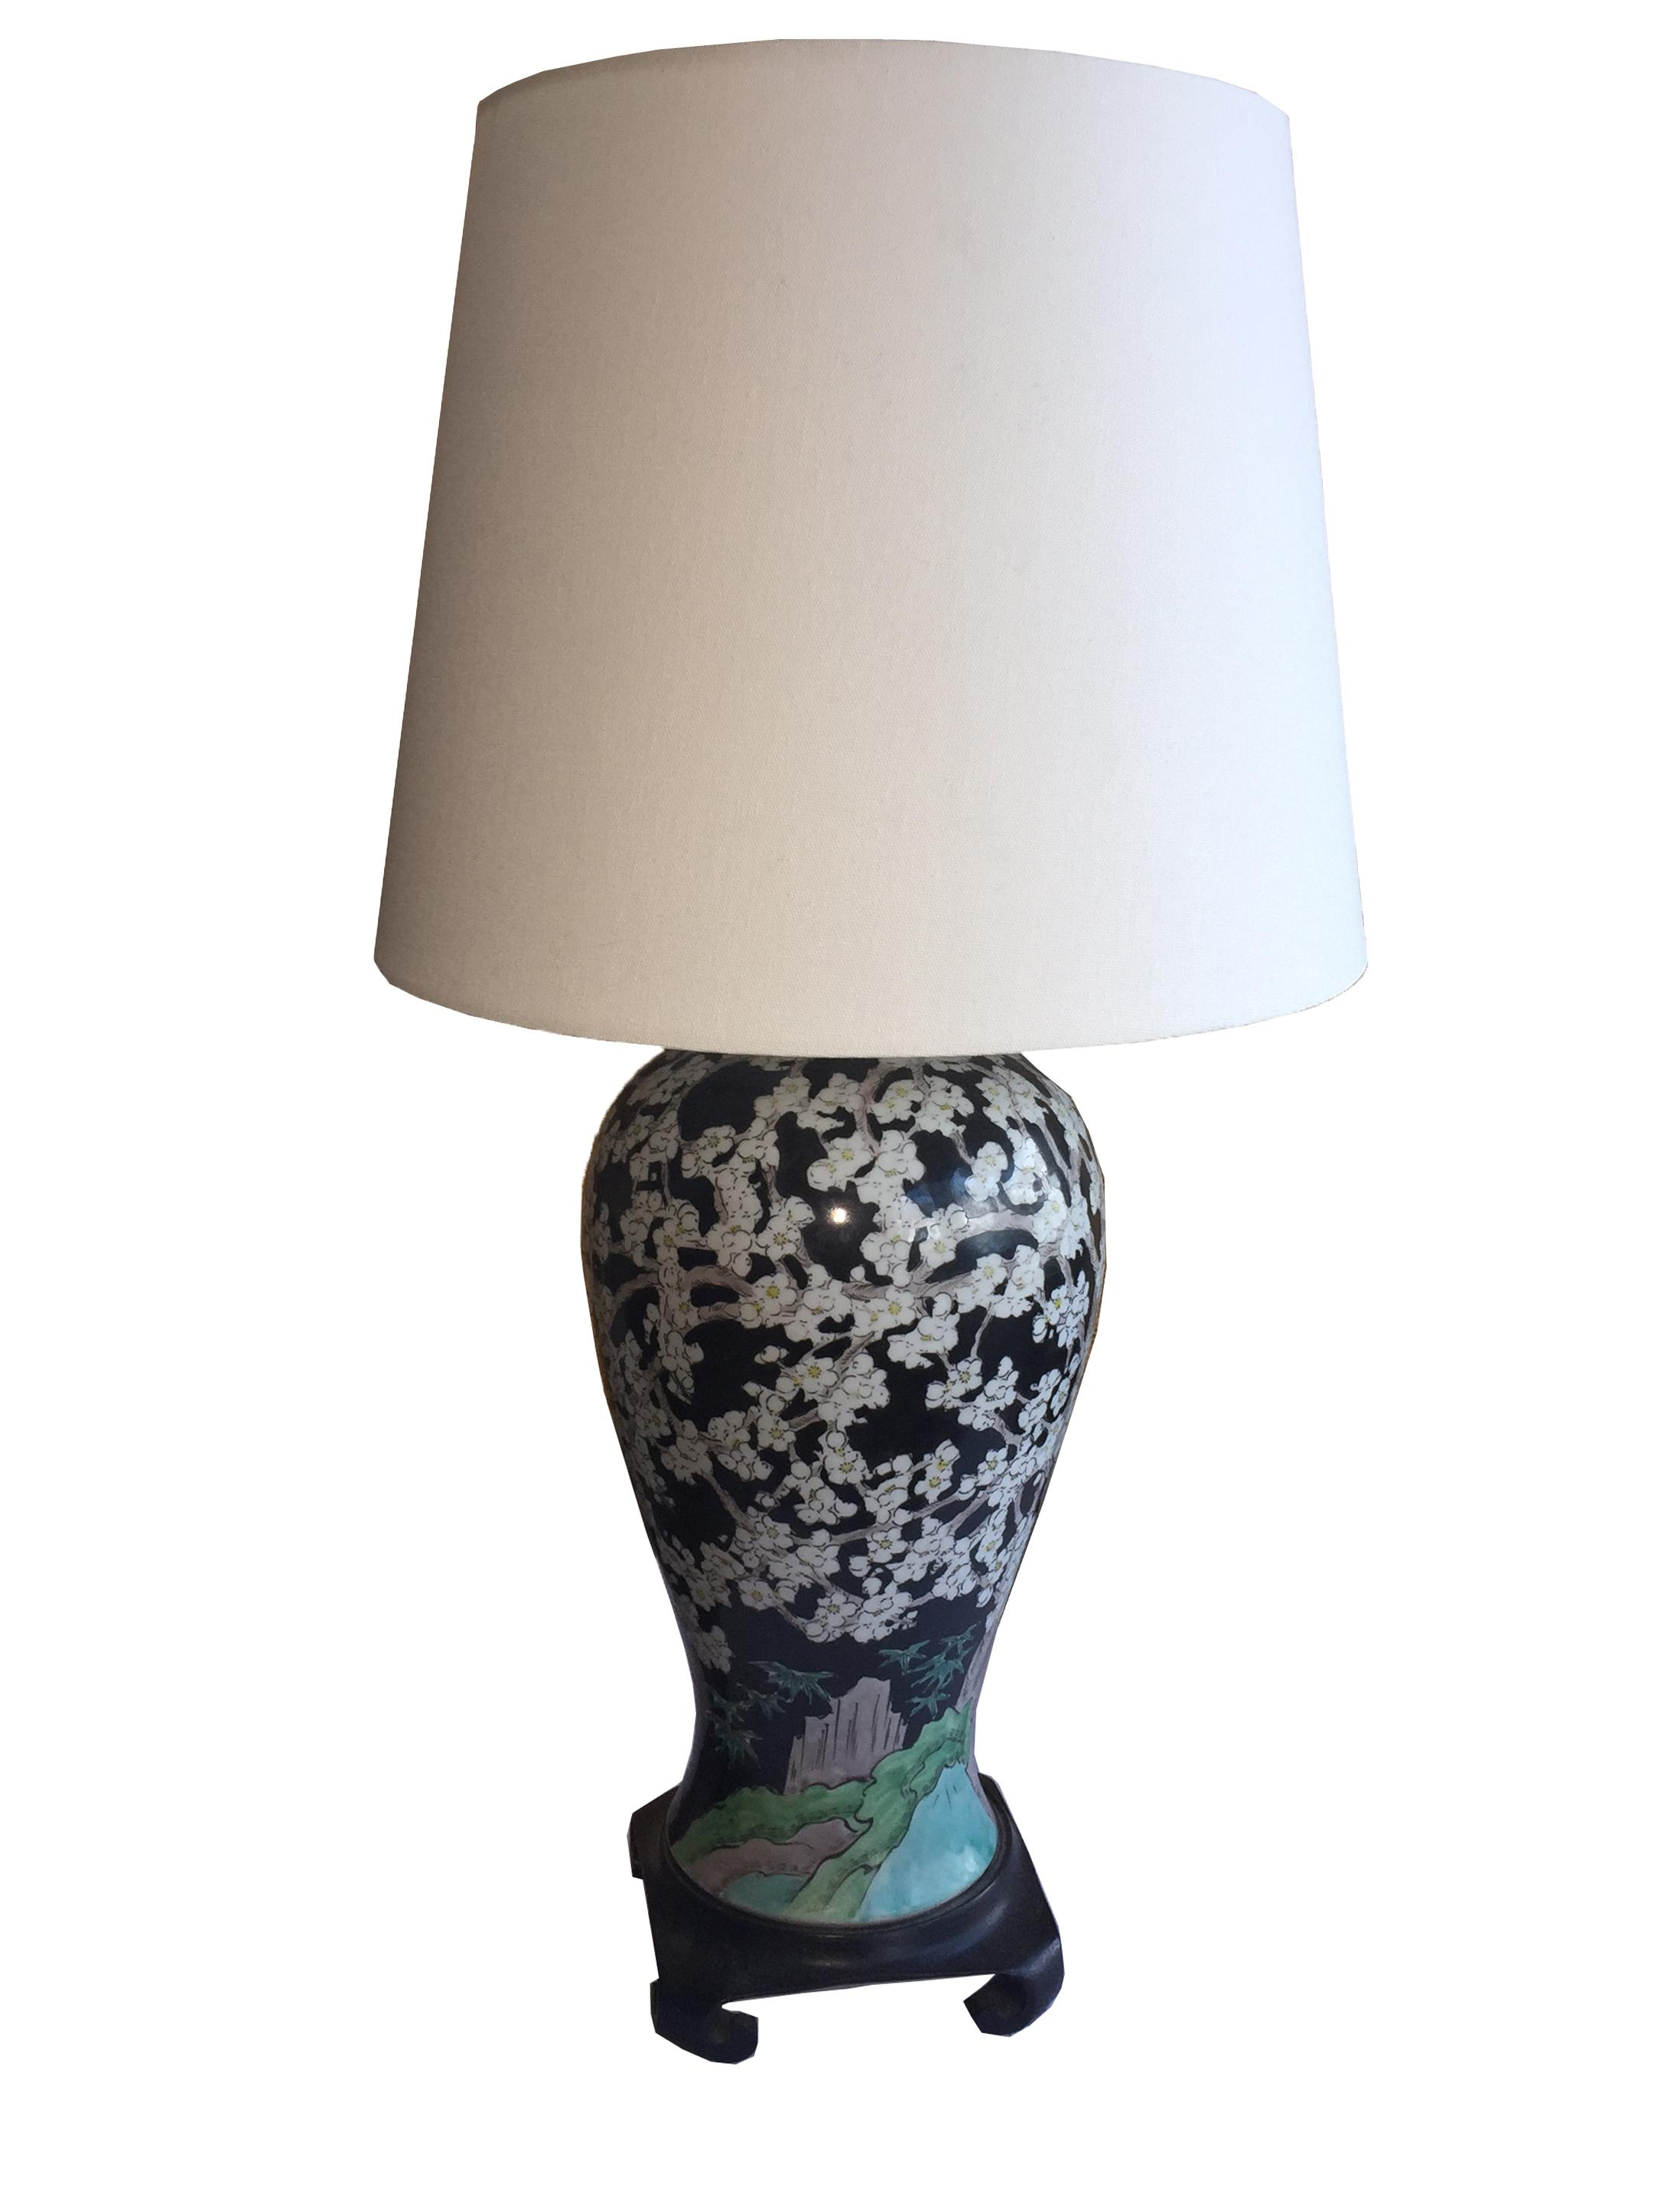 chinese famille noir vase lamp chairish. Black Bedroom Furniture Sets. Home Design Ideas